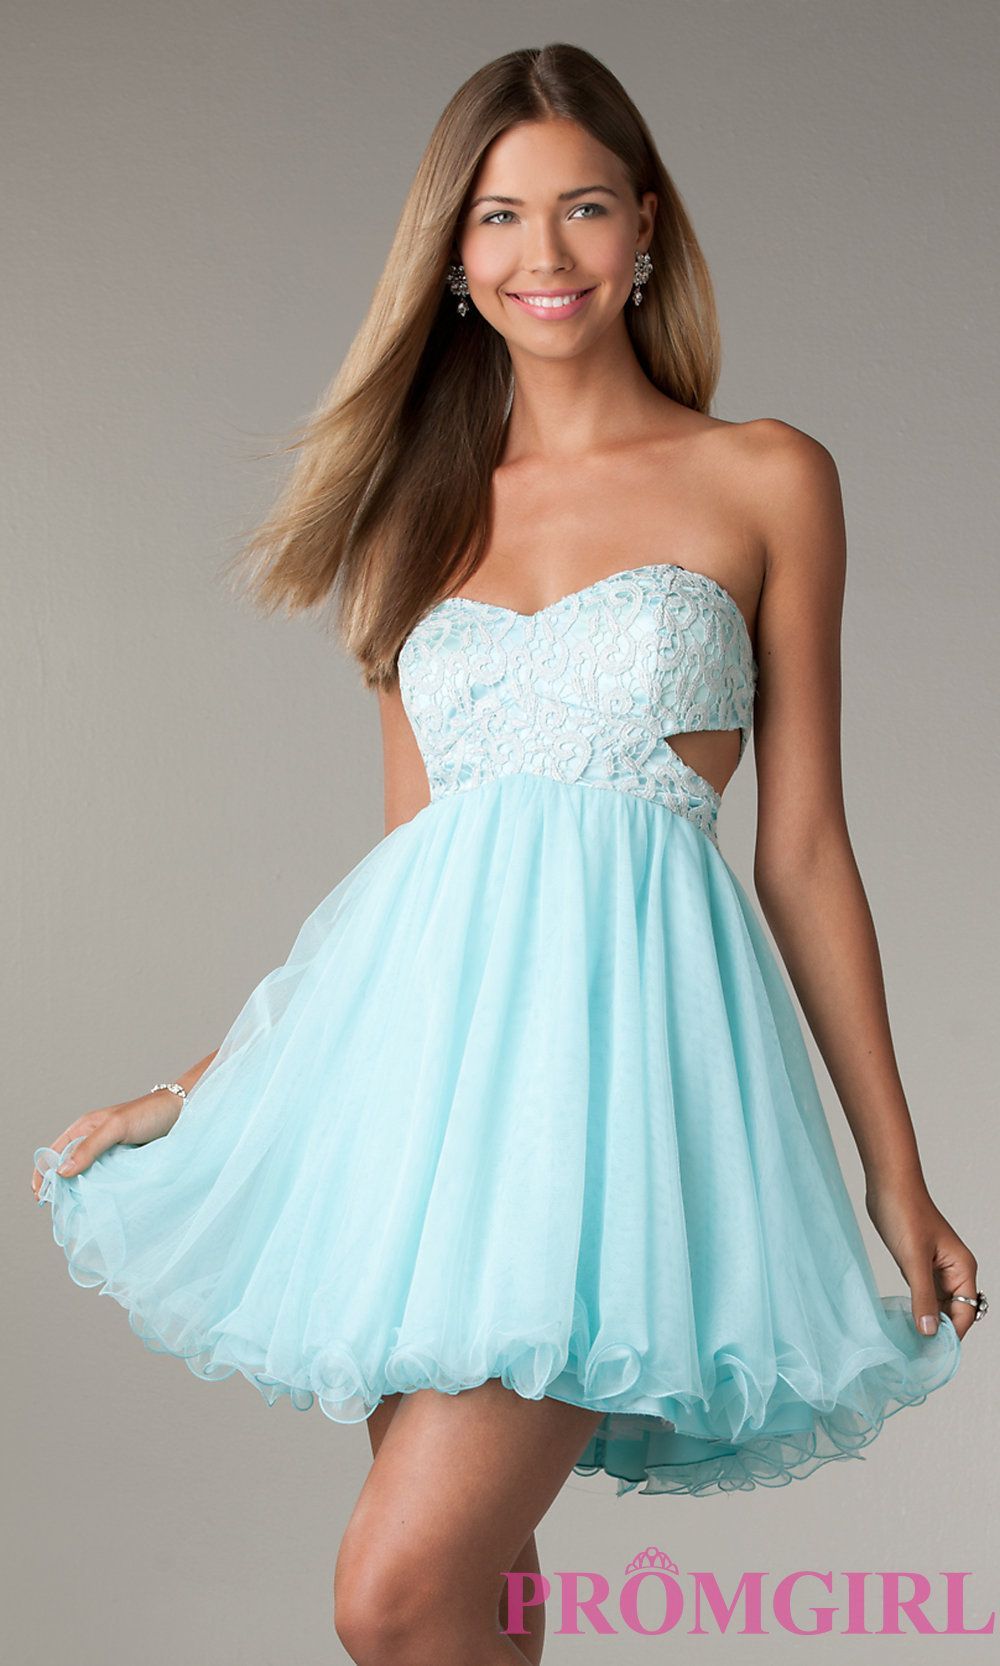 Short Prom Dress with Cut Out Sides, LA Glo Party Dress- PromGirl ...